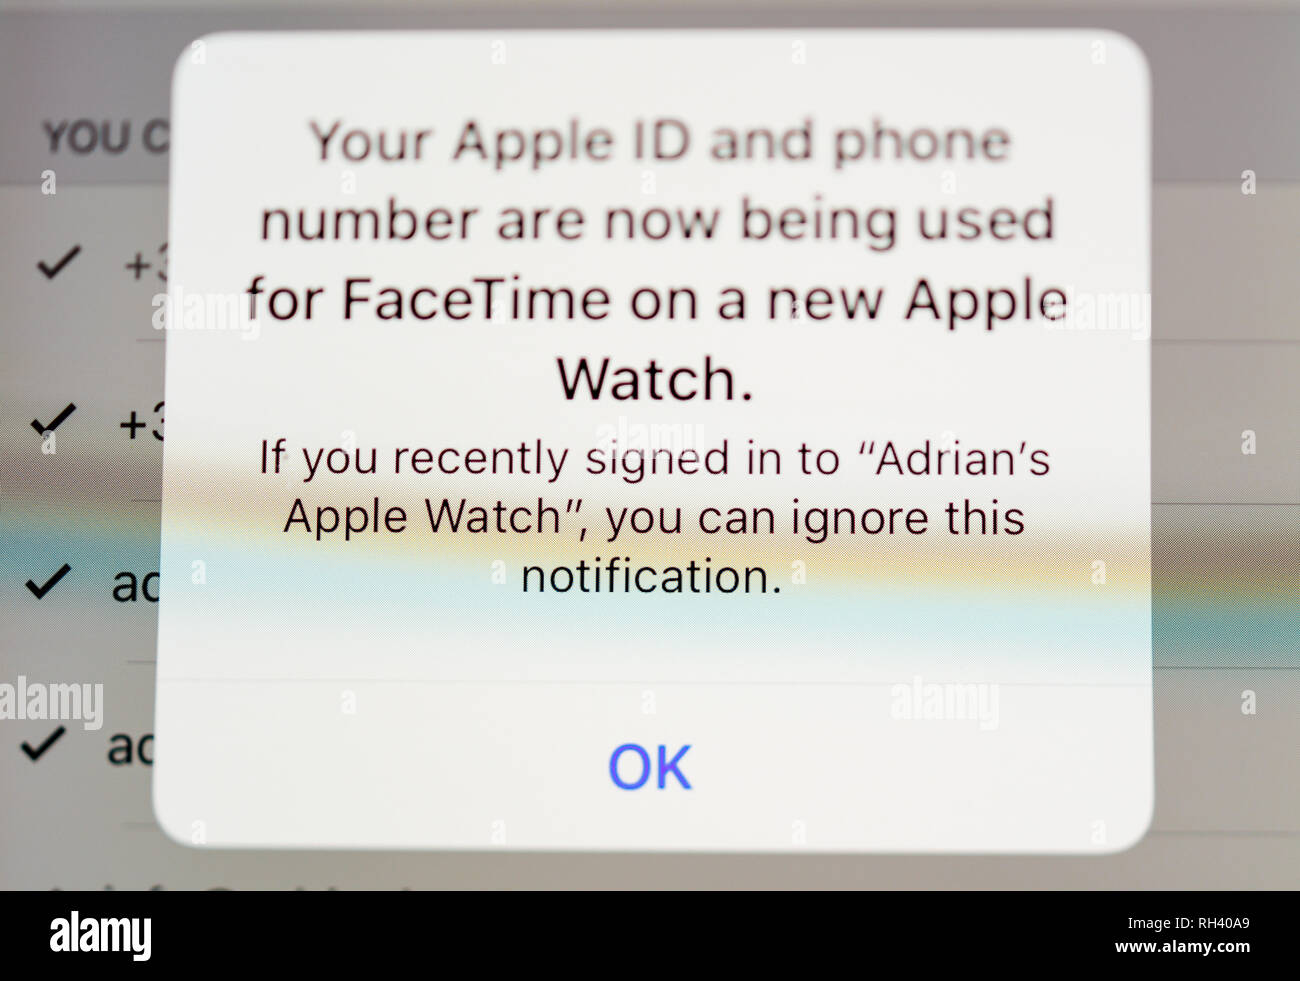 Paris, France - Jan 30, 2018: Your Apple id and phone number